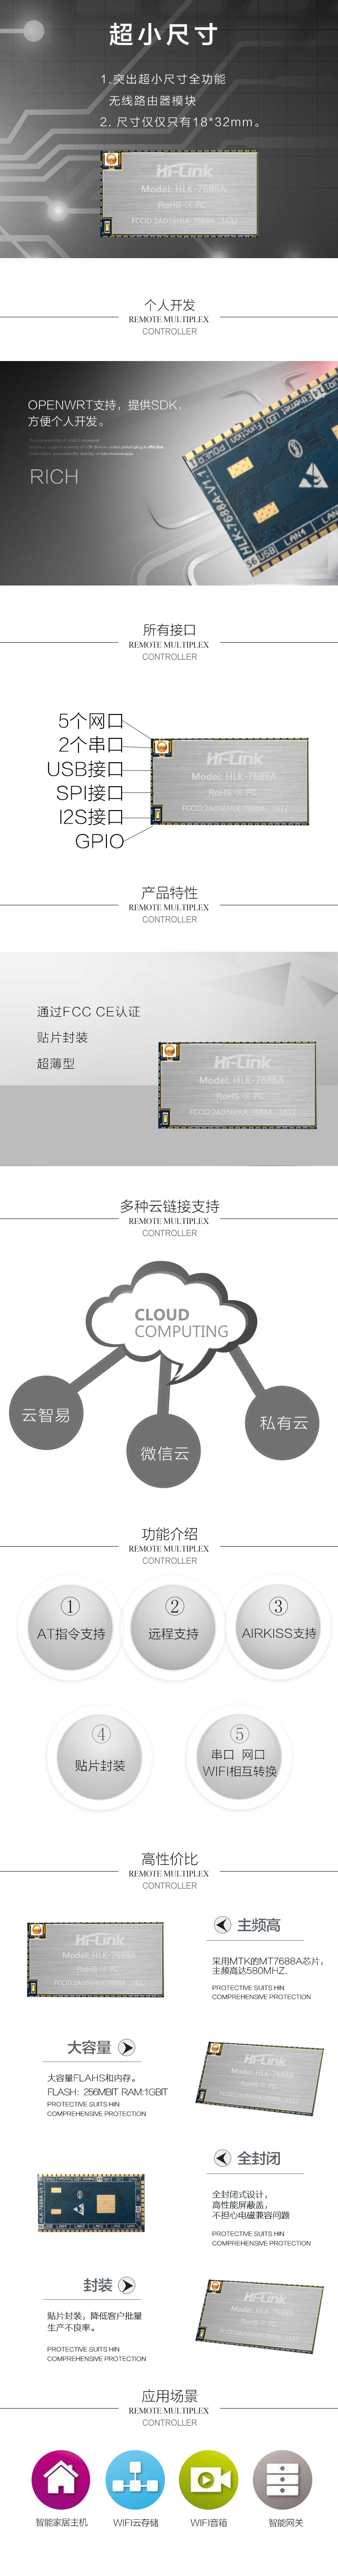 cheap Purchase china agnet Explosion models new serial to WIFI